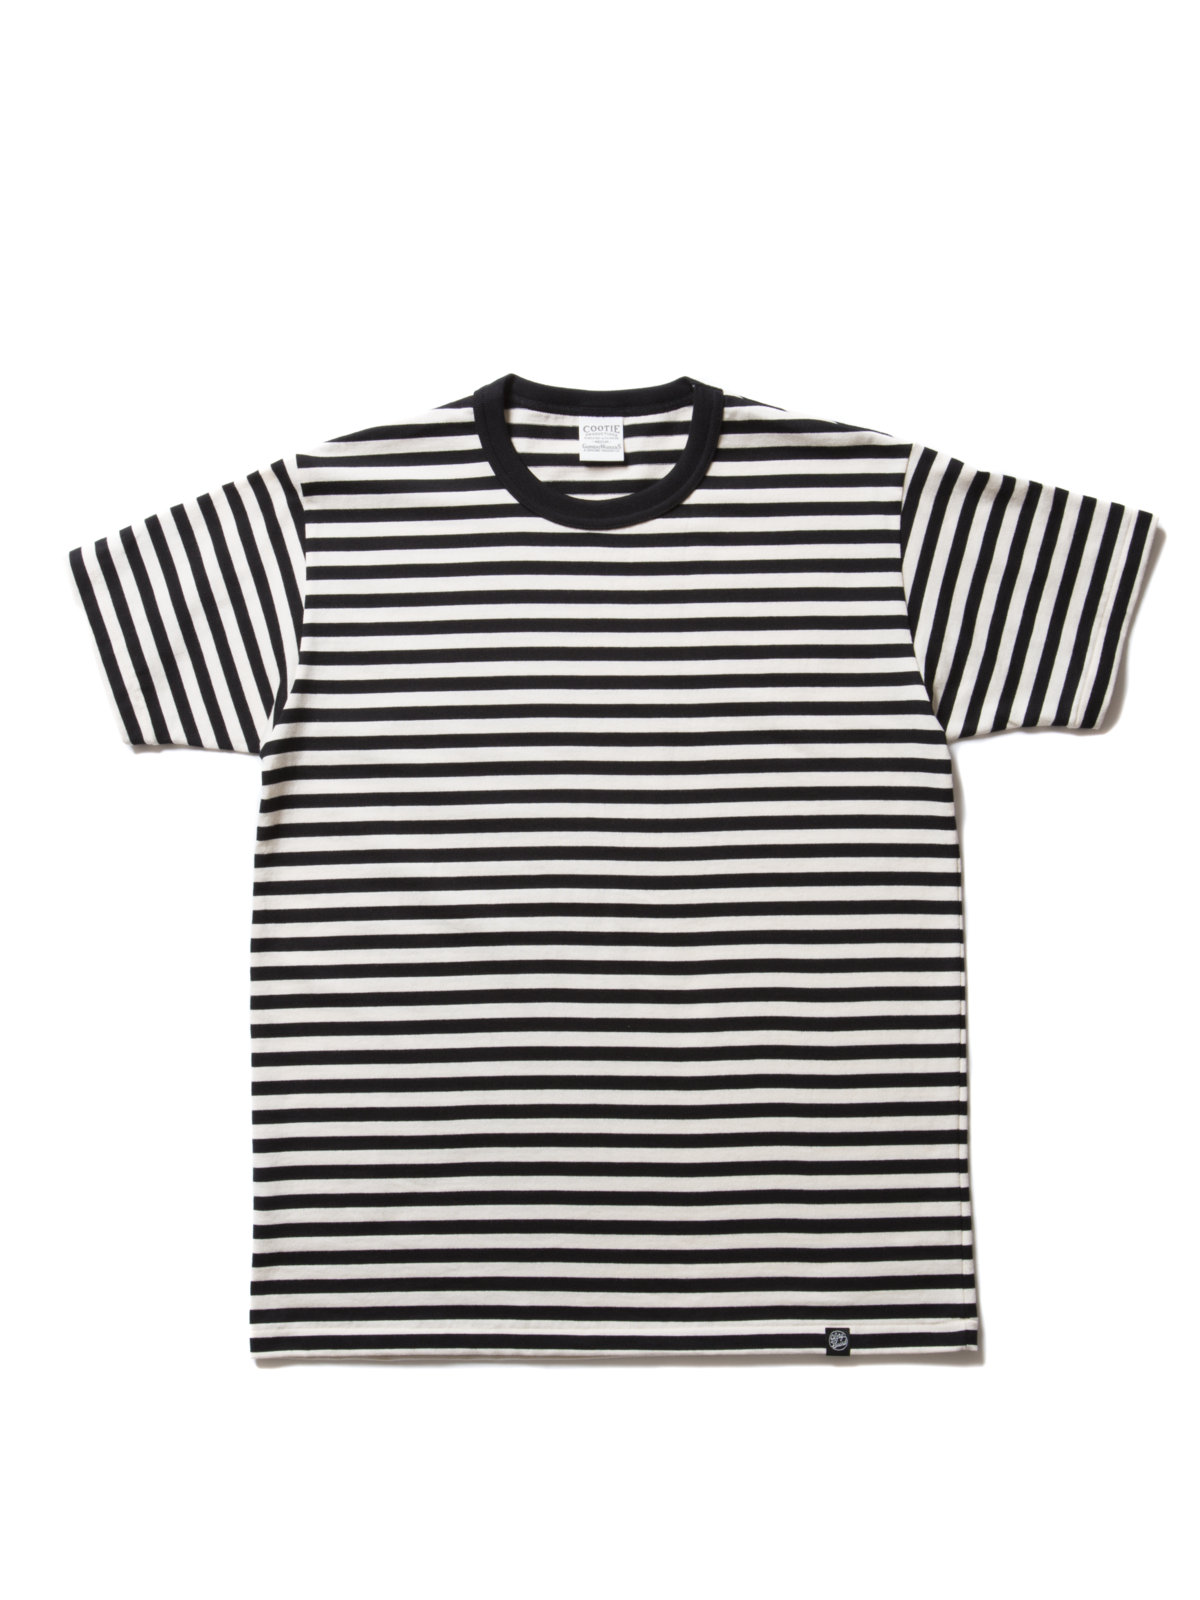 Solid Border S/S Tee-Off White Black-